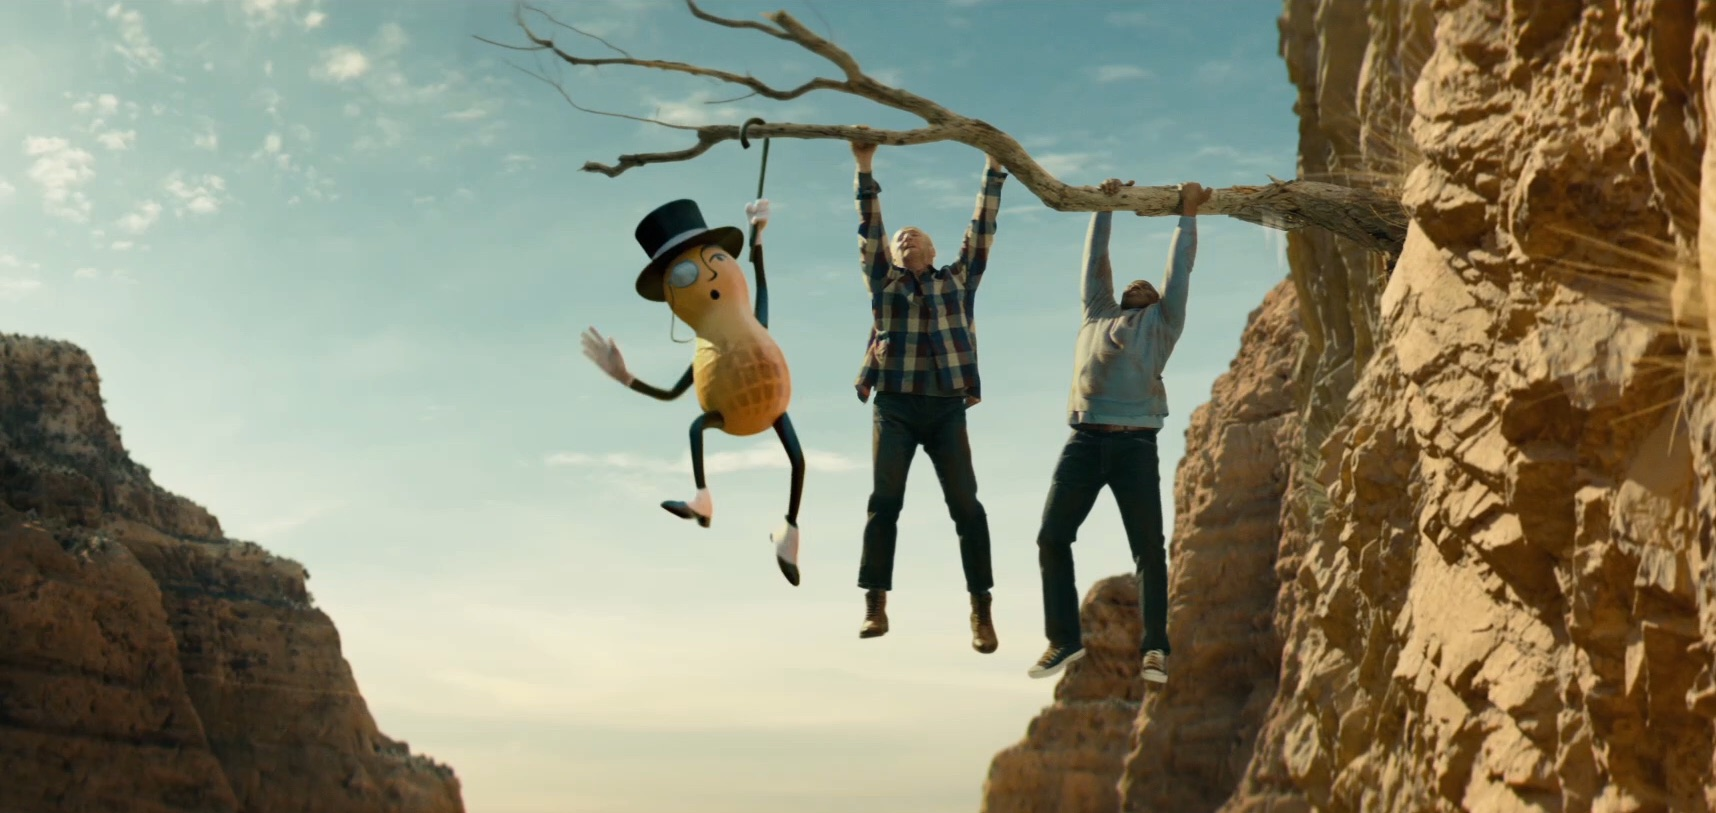 Mr. Peanut, Matt Walsh and Wesley Snipes are hanging on a tree branch in the new Planters Peanuts Super Bowl ad in which Mr. Peanut gives up his life to save his pals.